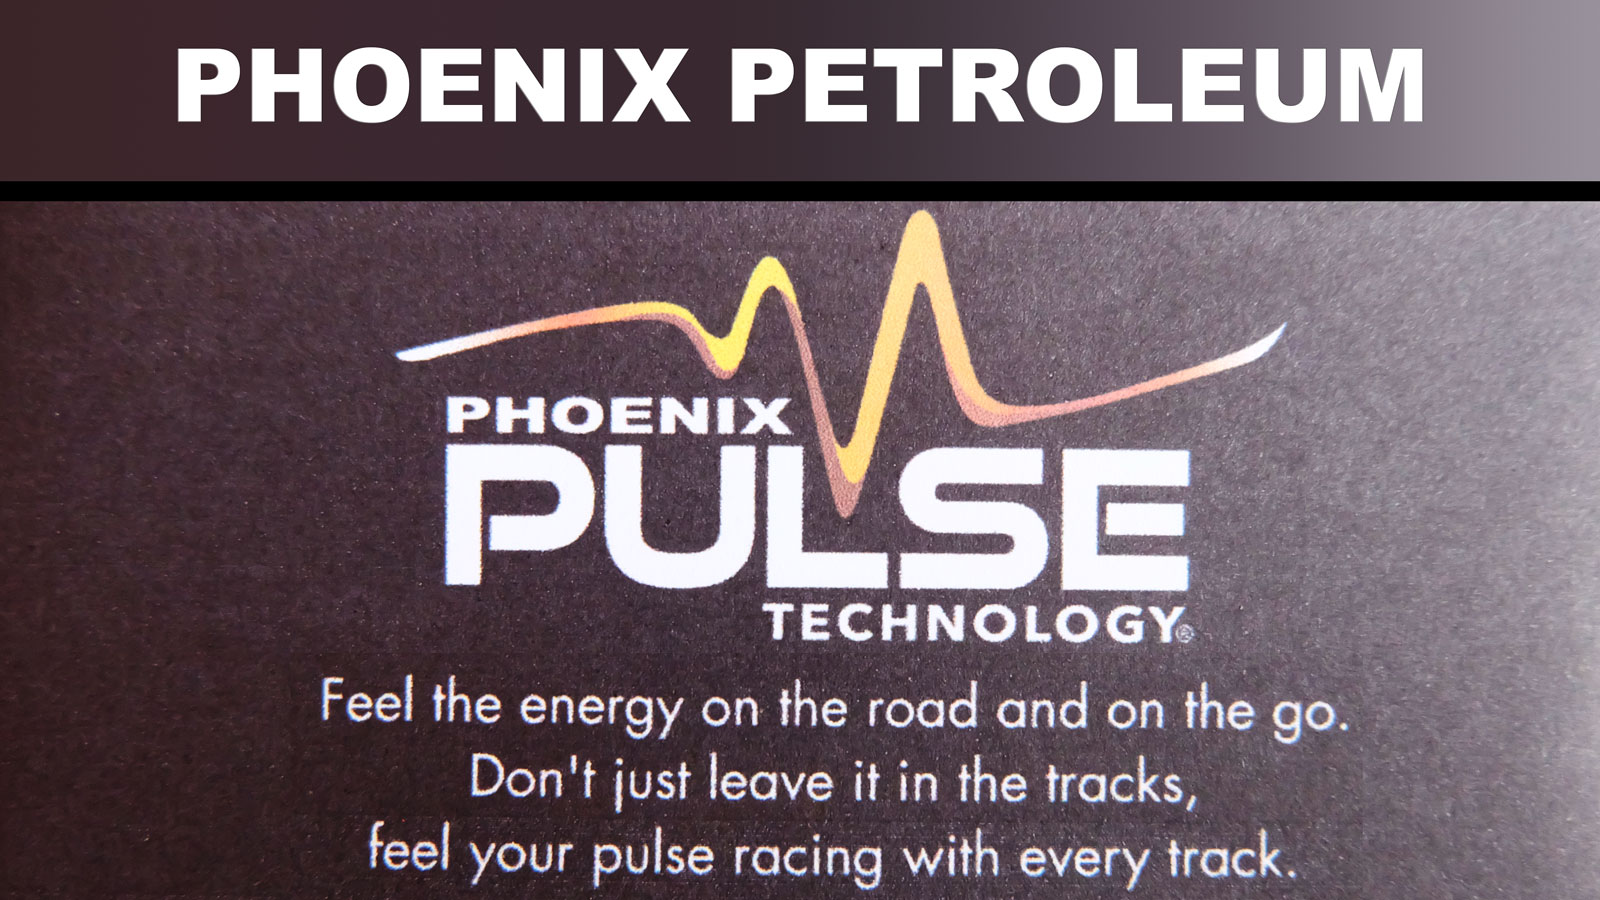 Get your pulse pumping with Phoenix Pulse